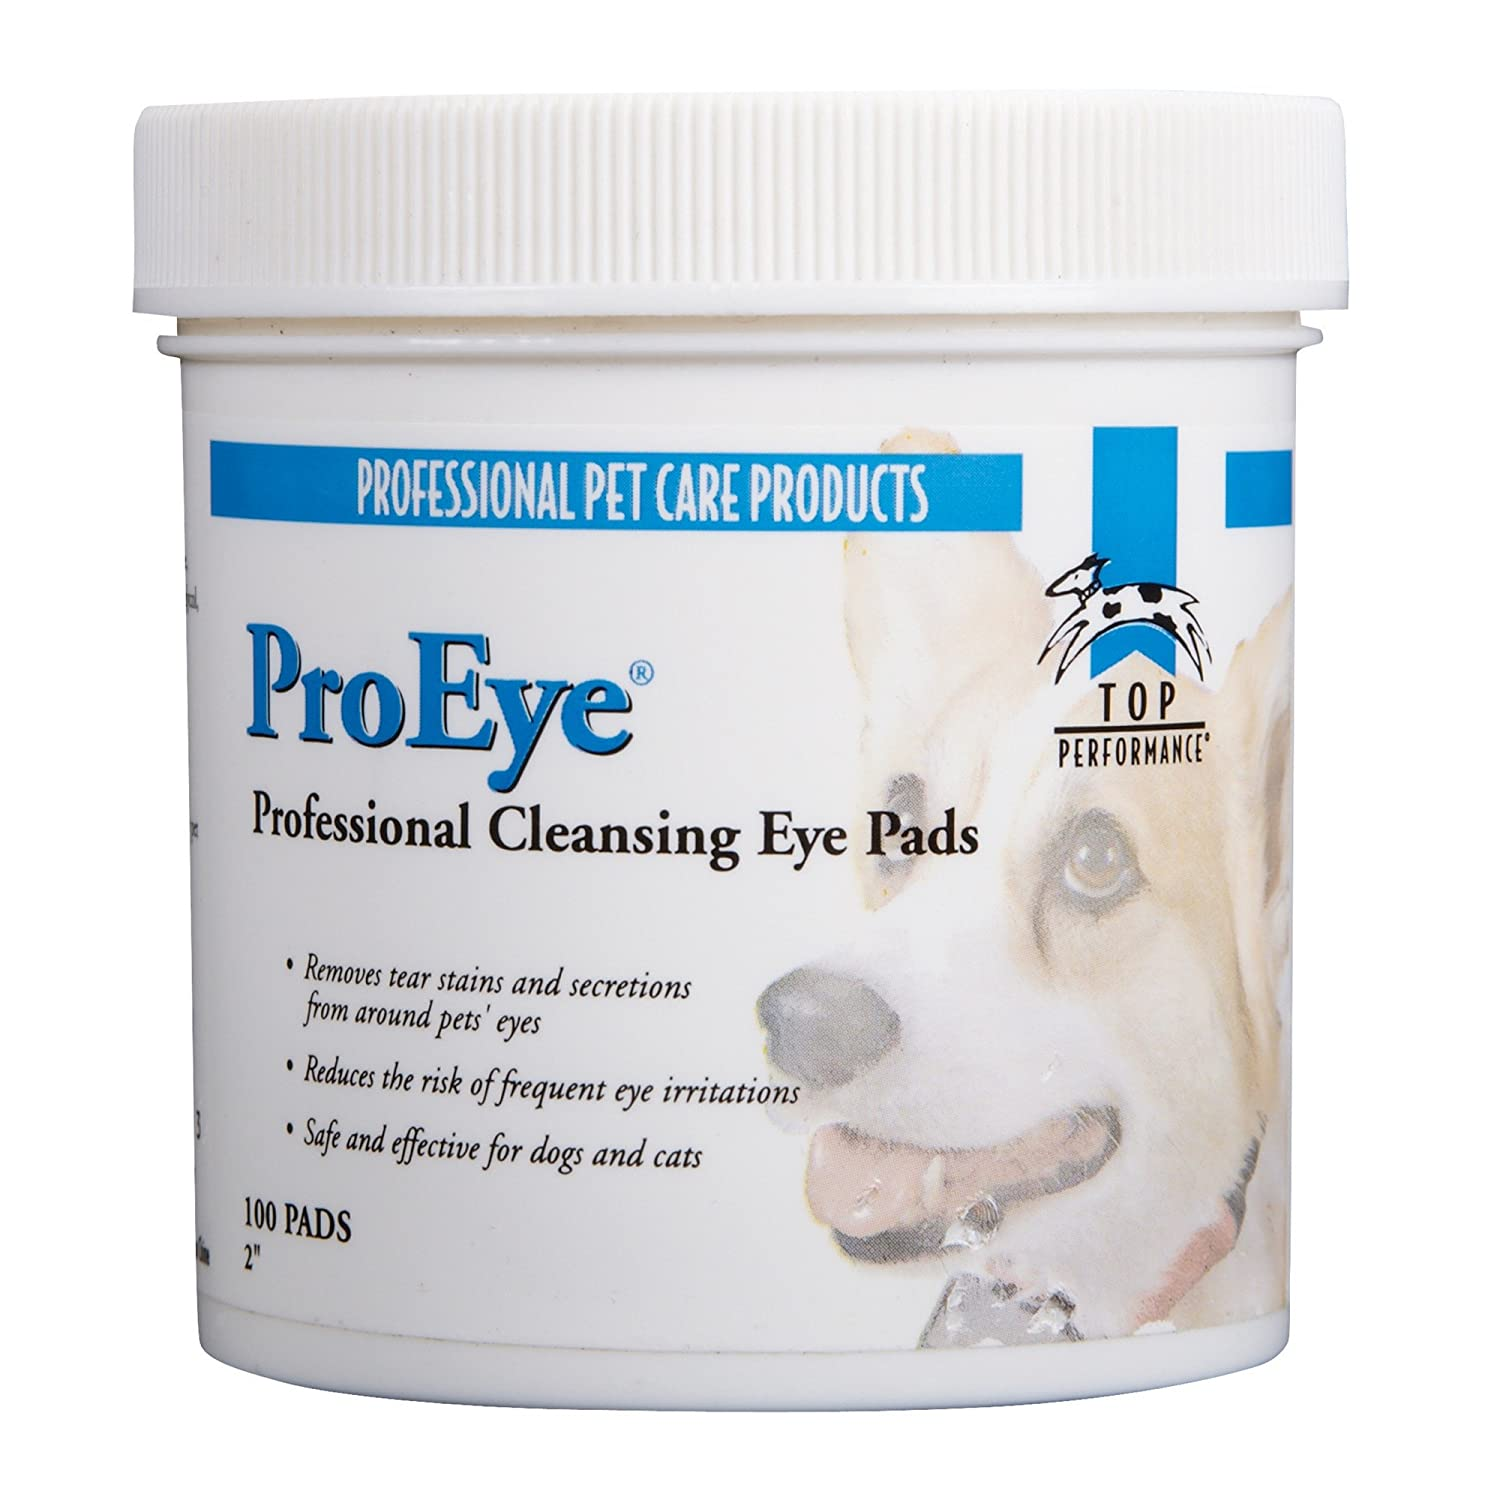 (Eye Pads) Top Performance Cleansing Pads for Pets- Safe and Effective Pads for Cleaning Teeth, Eyes, Ears